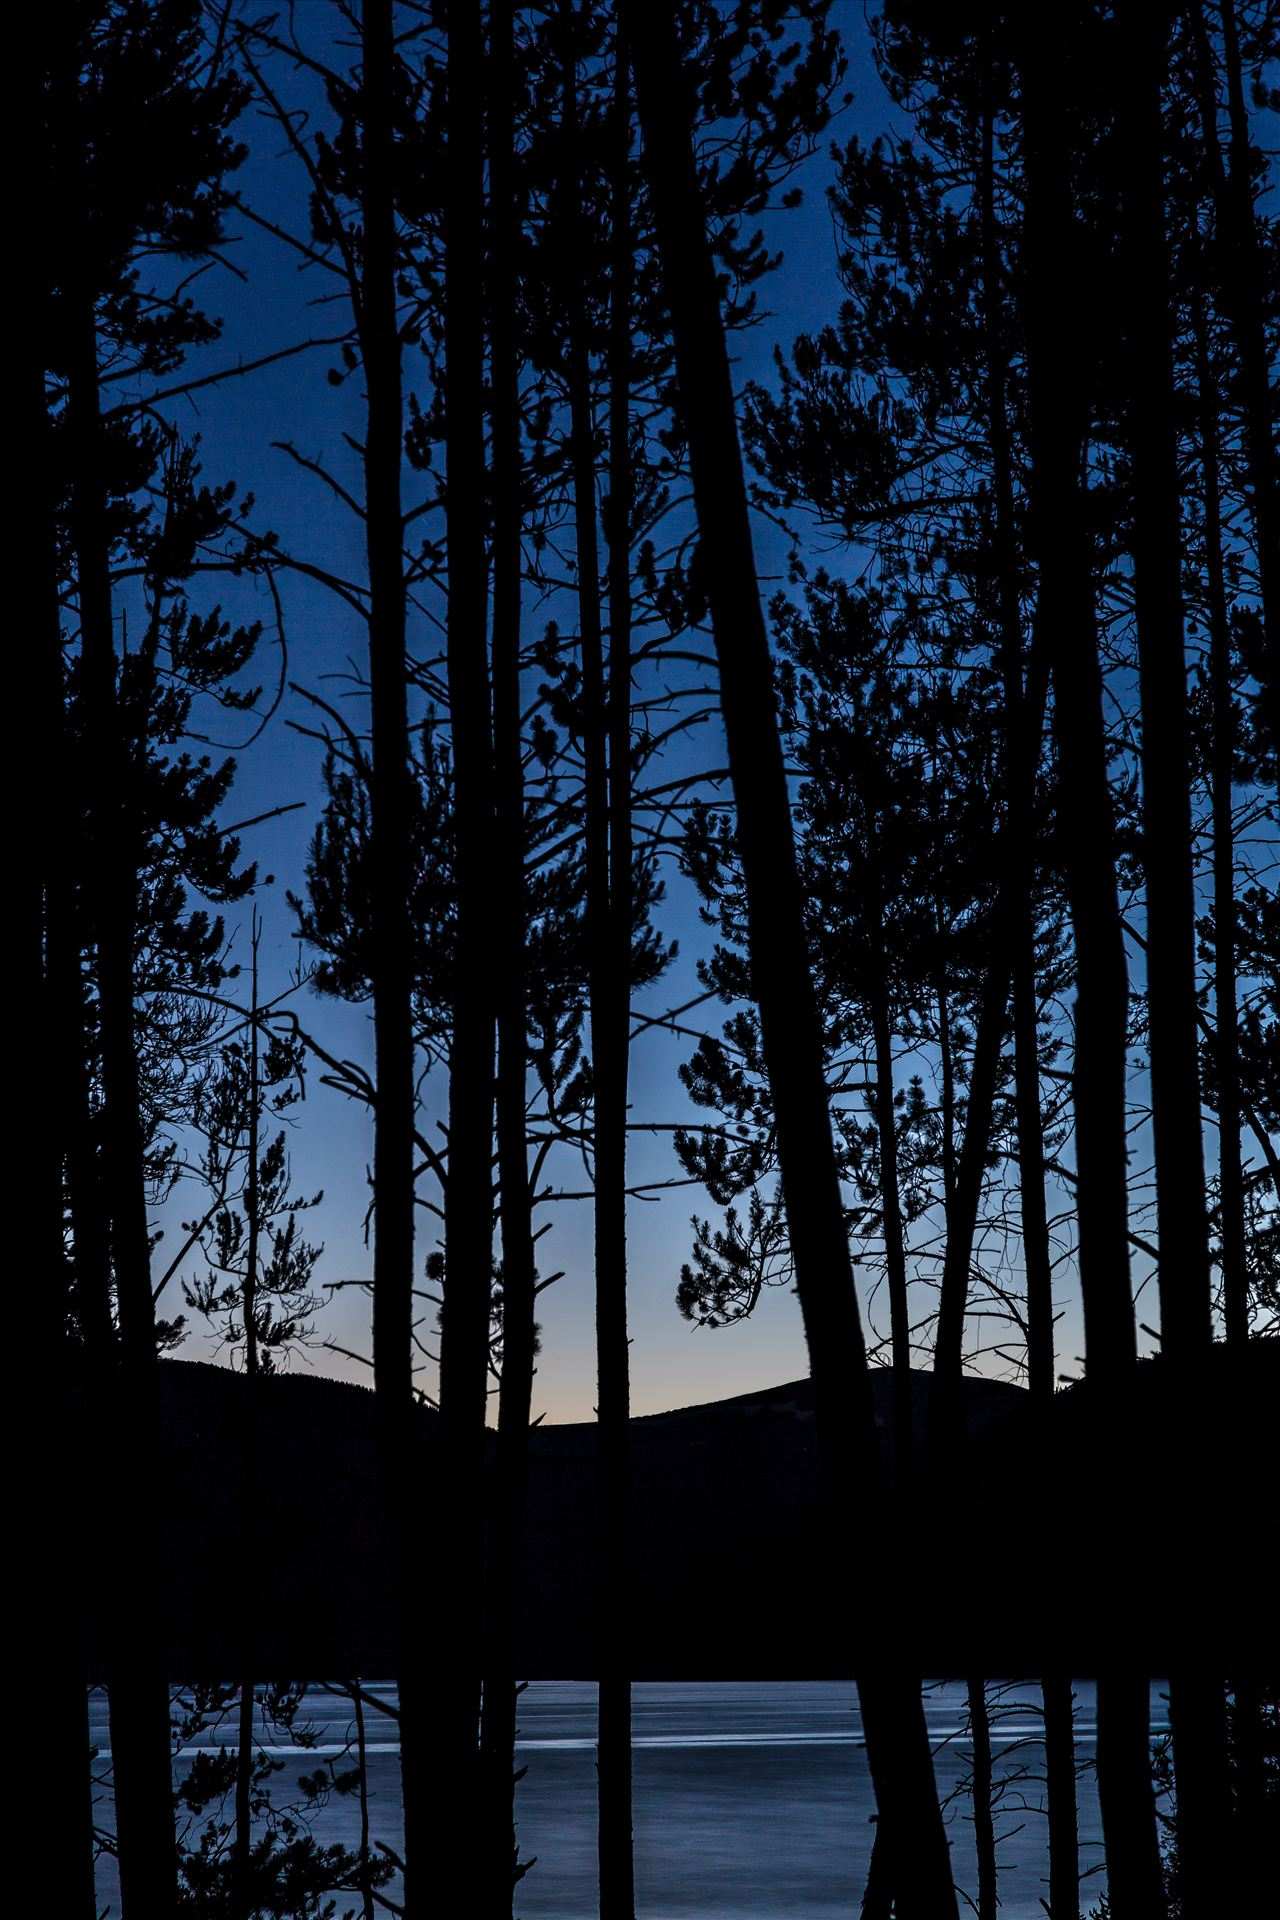 Through the Woods - Turqouise through the trees, Lake lit by the last of the sunlight, as seen from our campsite. by D Scott Smith